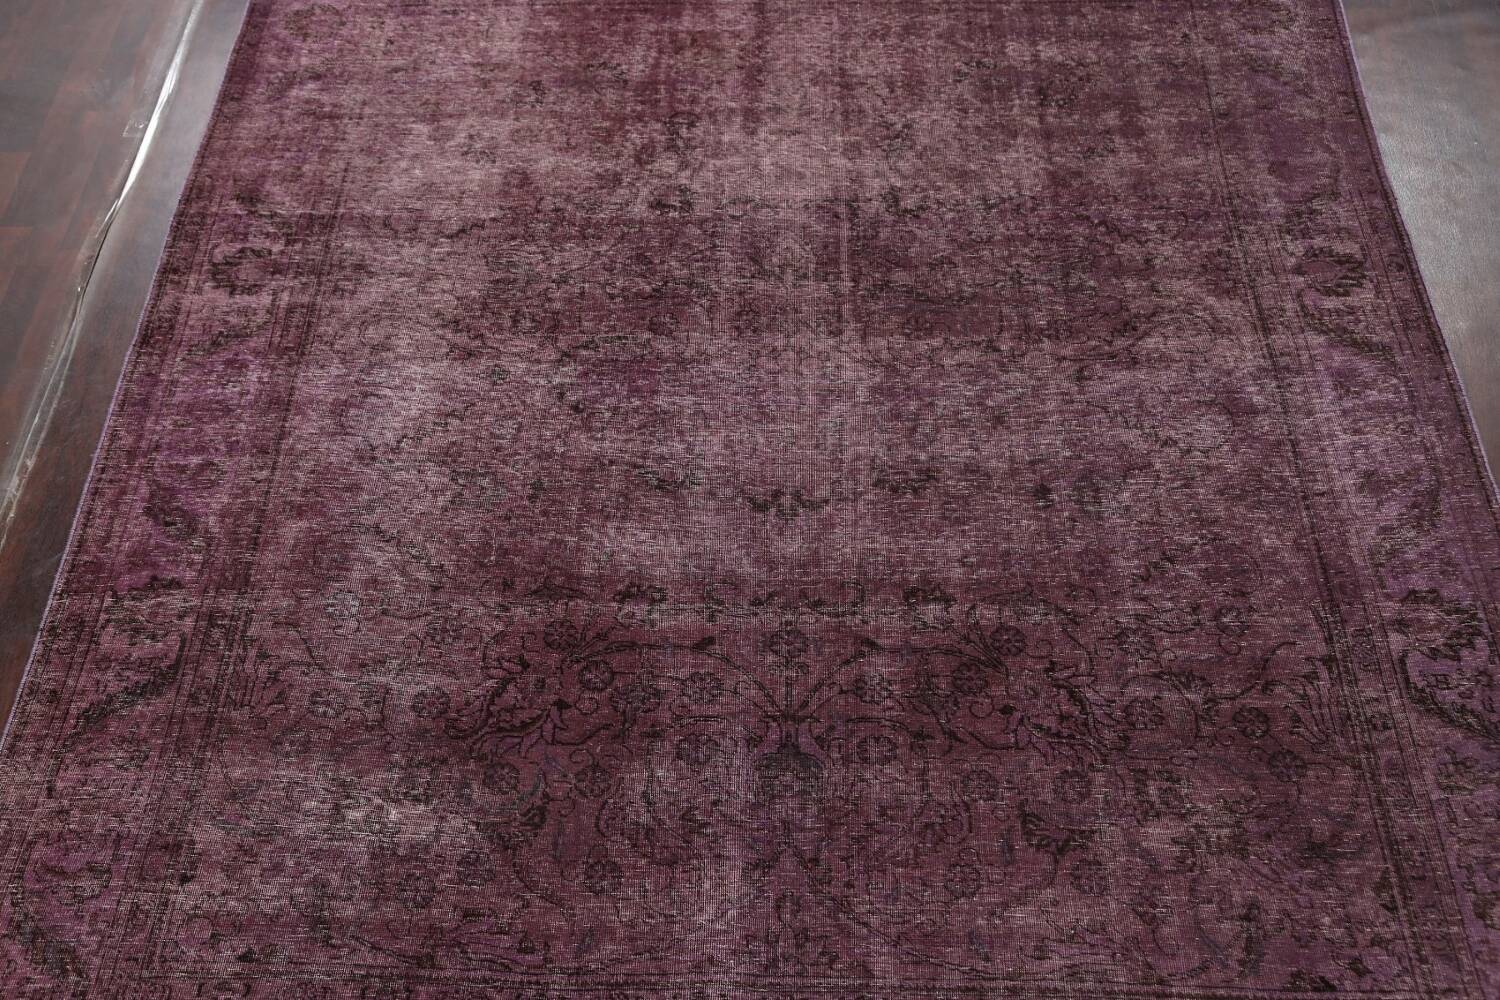 Distressed Over-dyed Tabriz Persian Area Rug 10x11 image 3